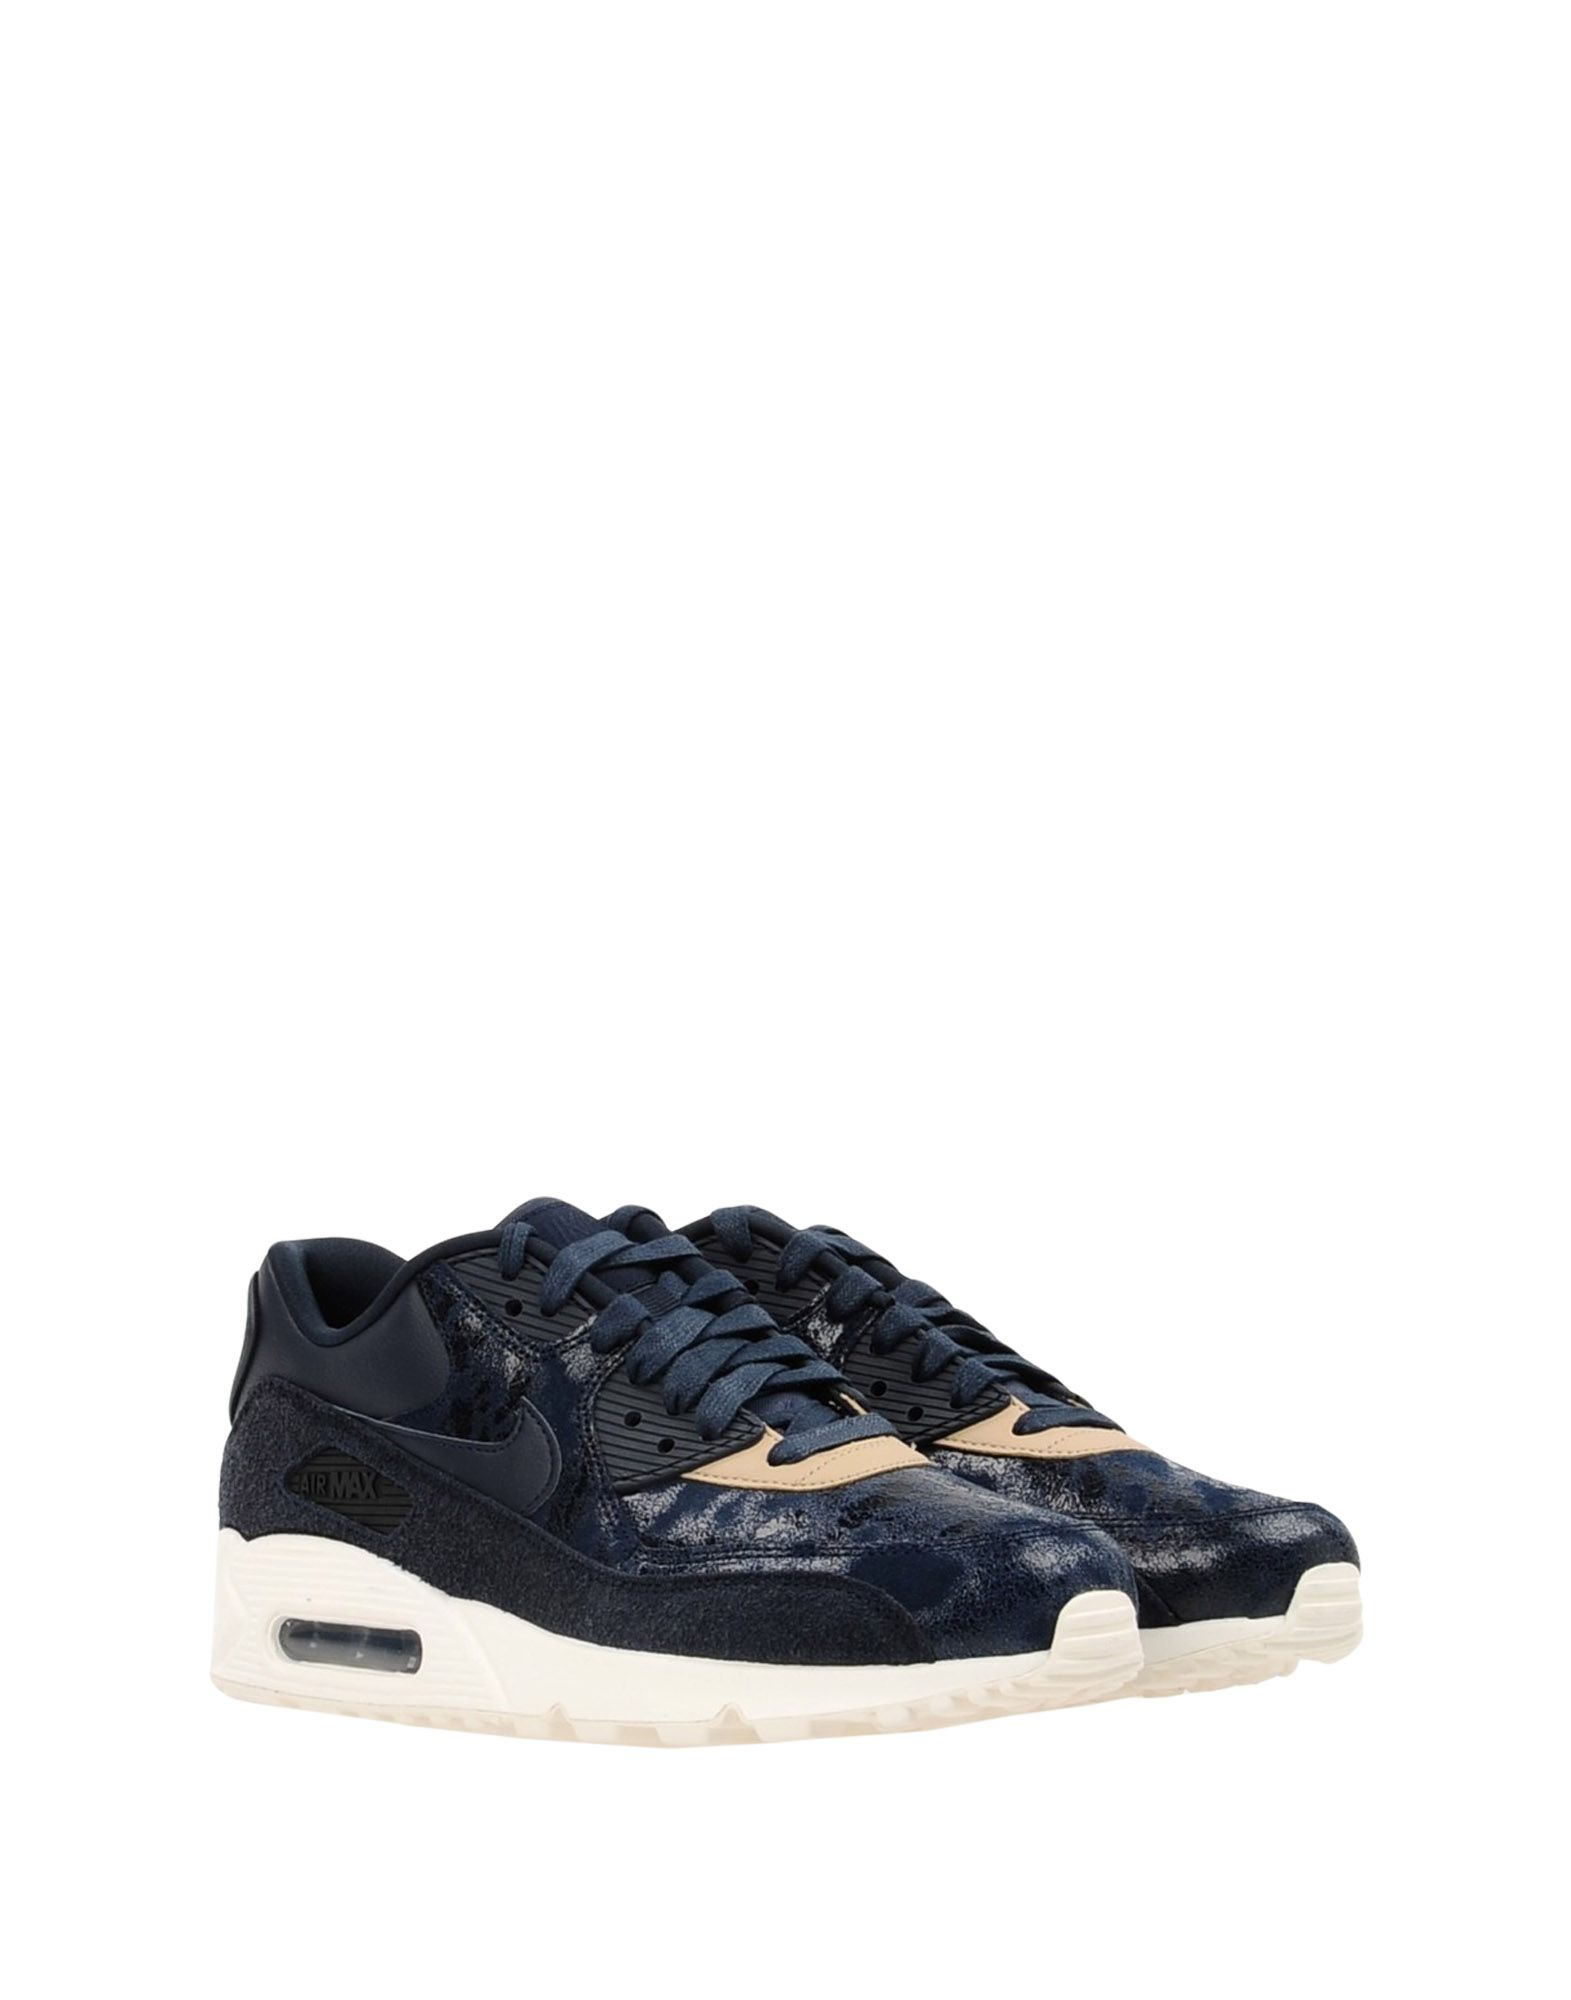 Sneakers Nike  Air Max 90 Sd - Femme - Sneakers Nike sur